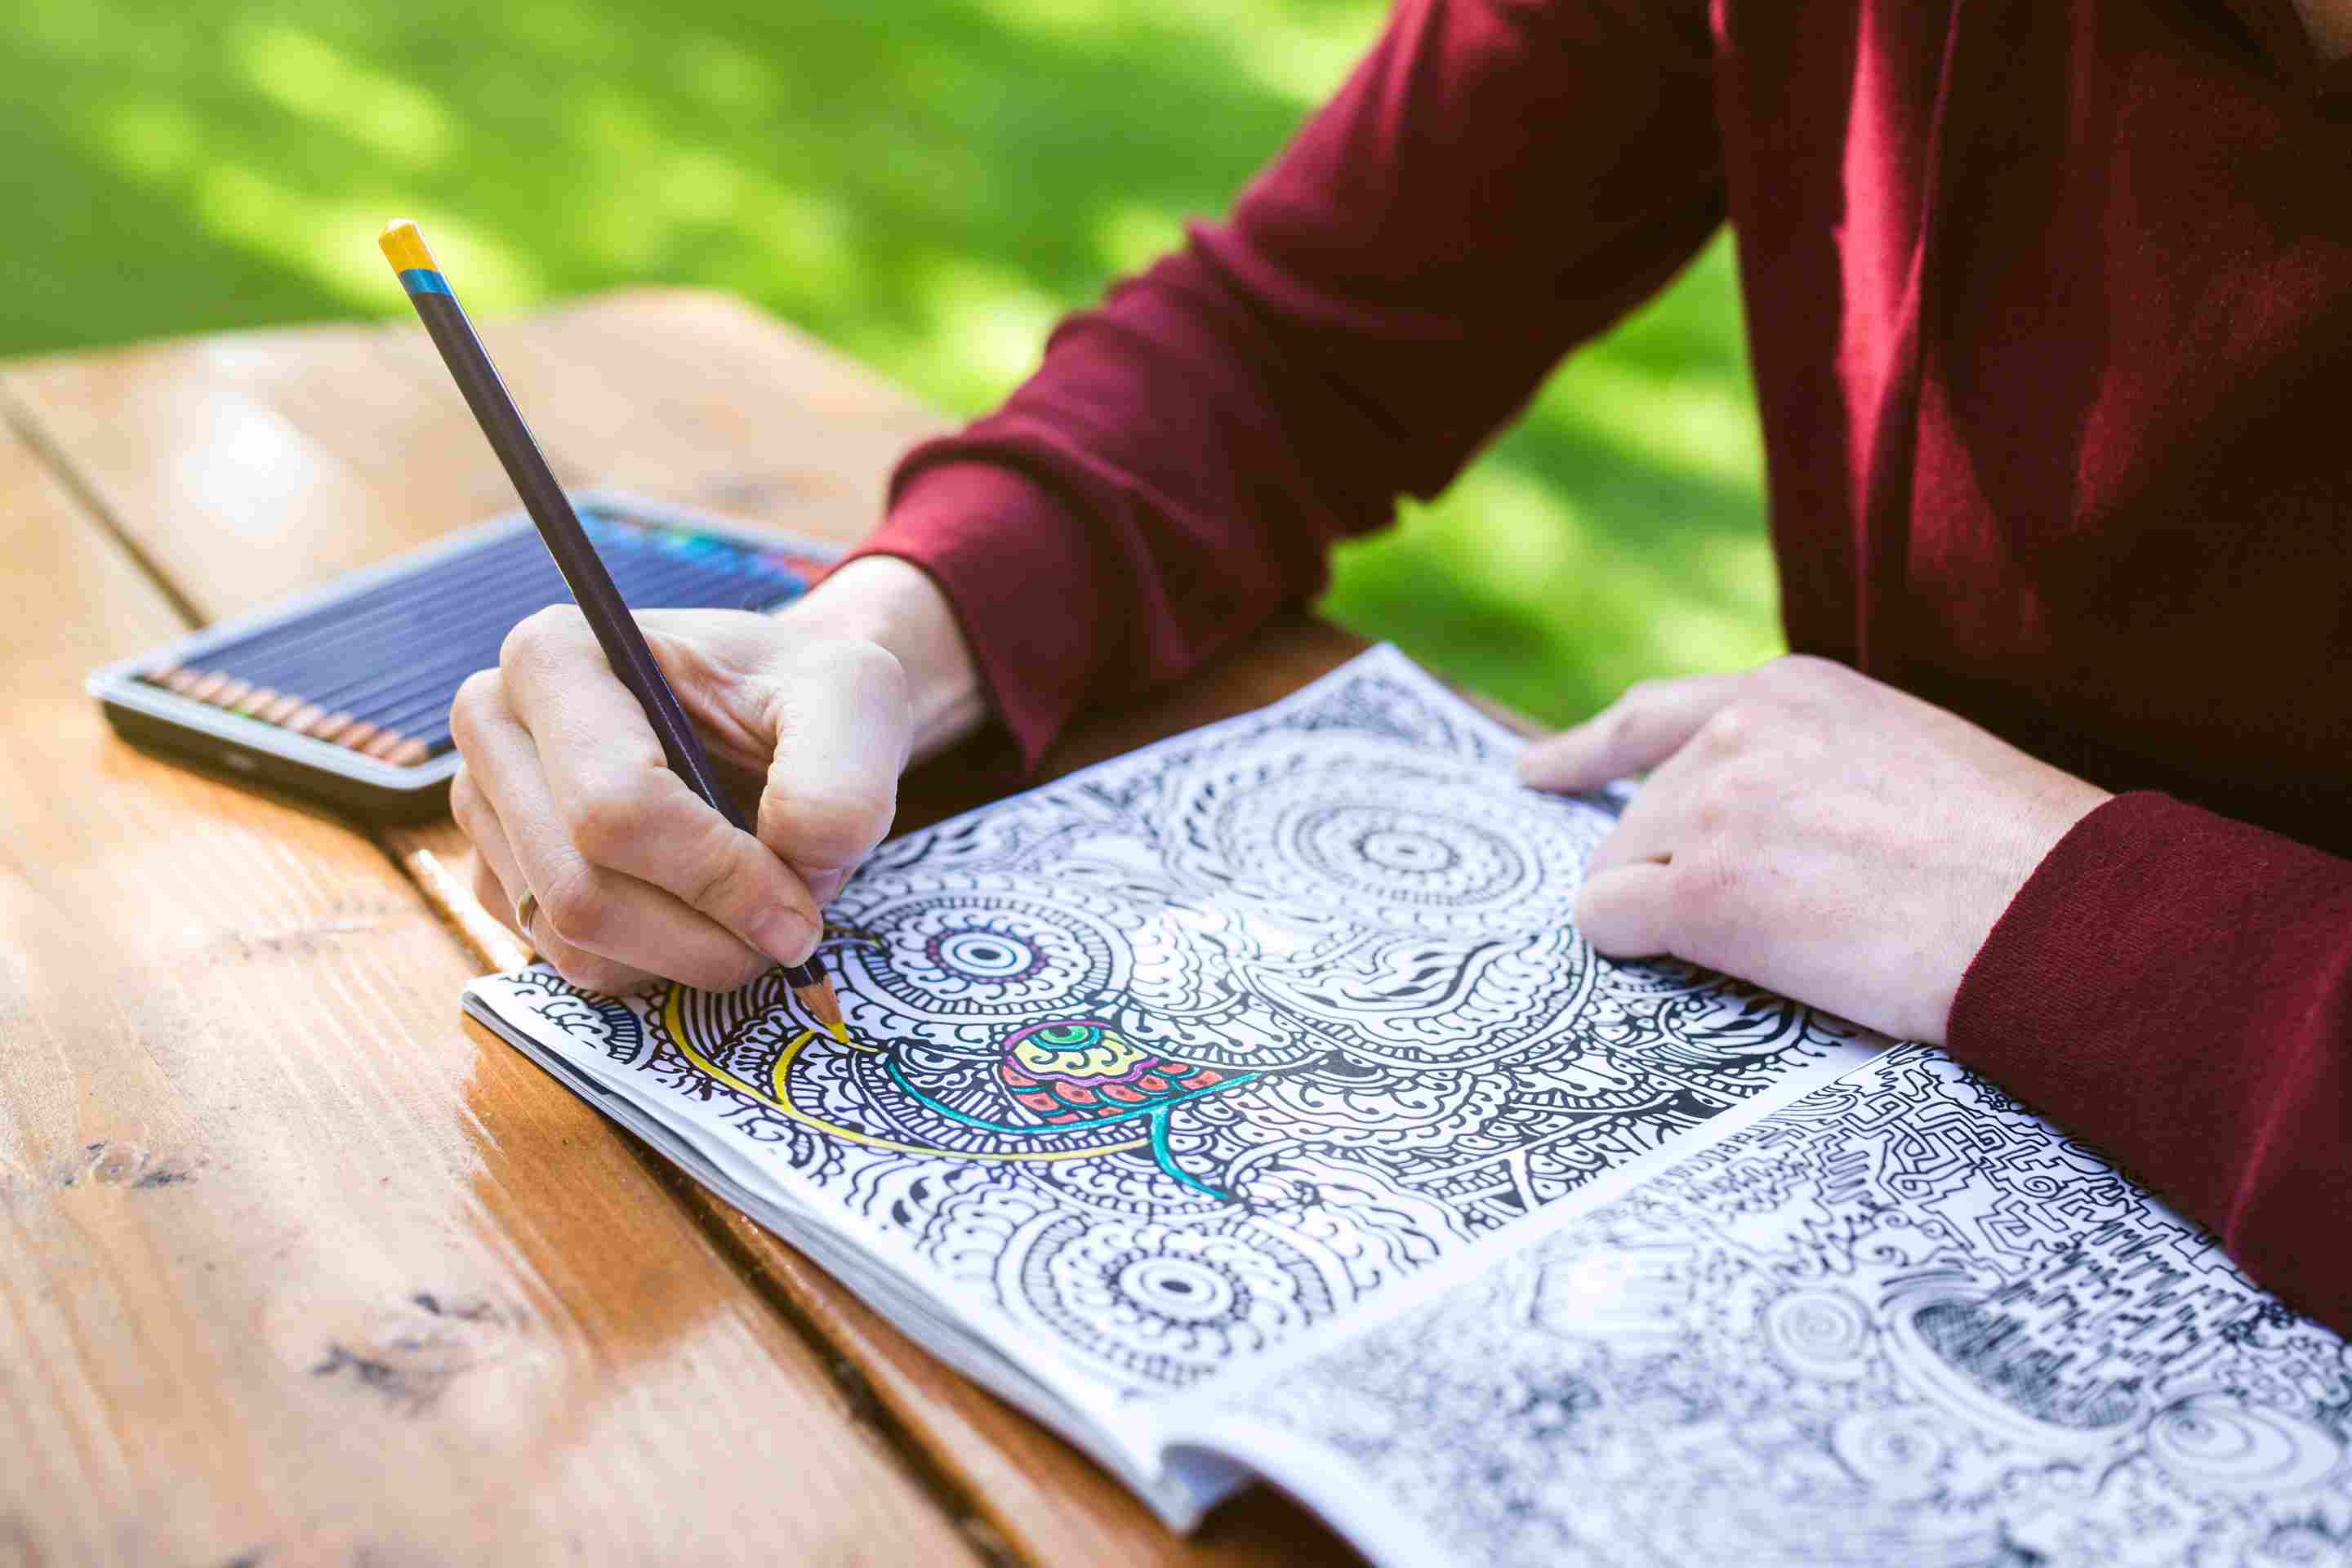 Woman using a coloring pencil to color an intricate coloring book.